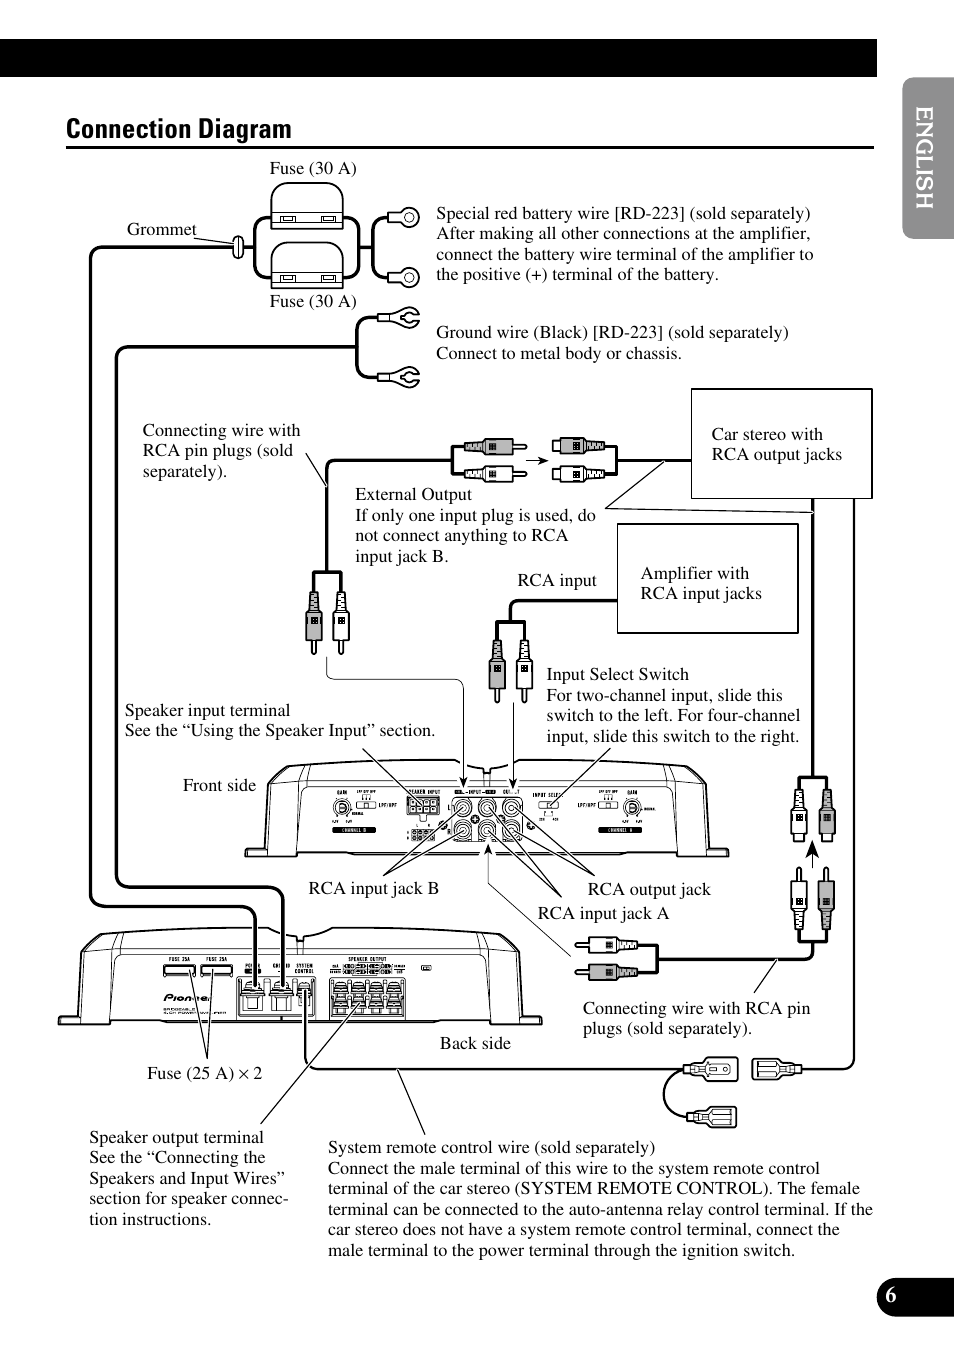 Connection Diagram Pioneer Gm 6300f User Manual Page 7 86 Car Stereo Connector